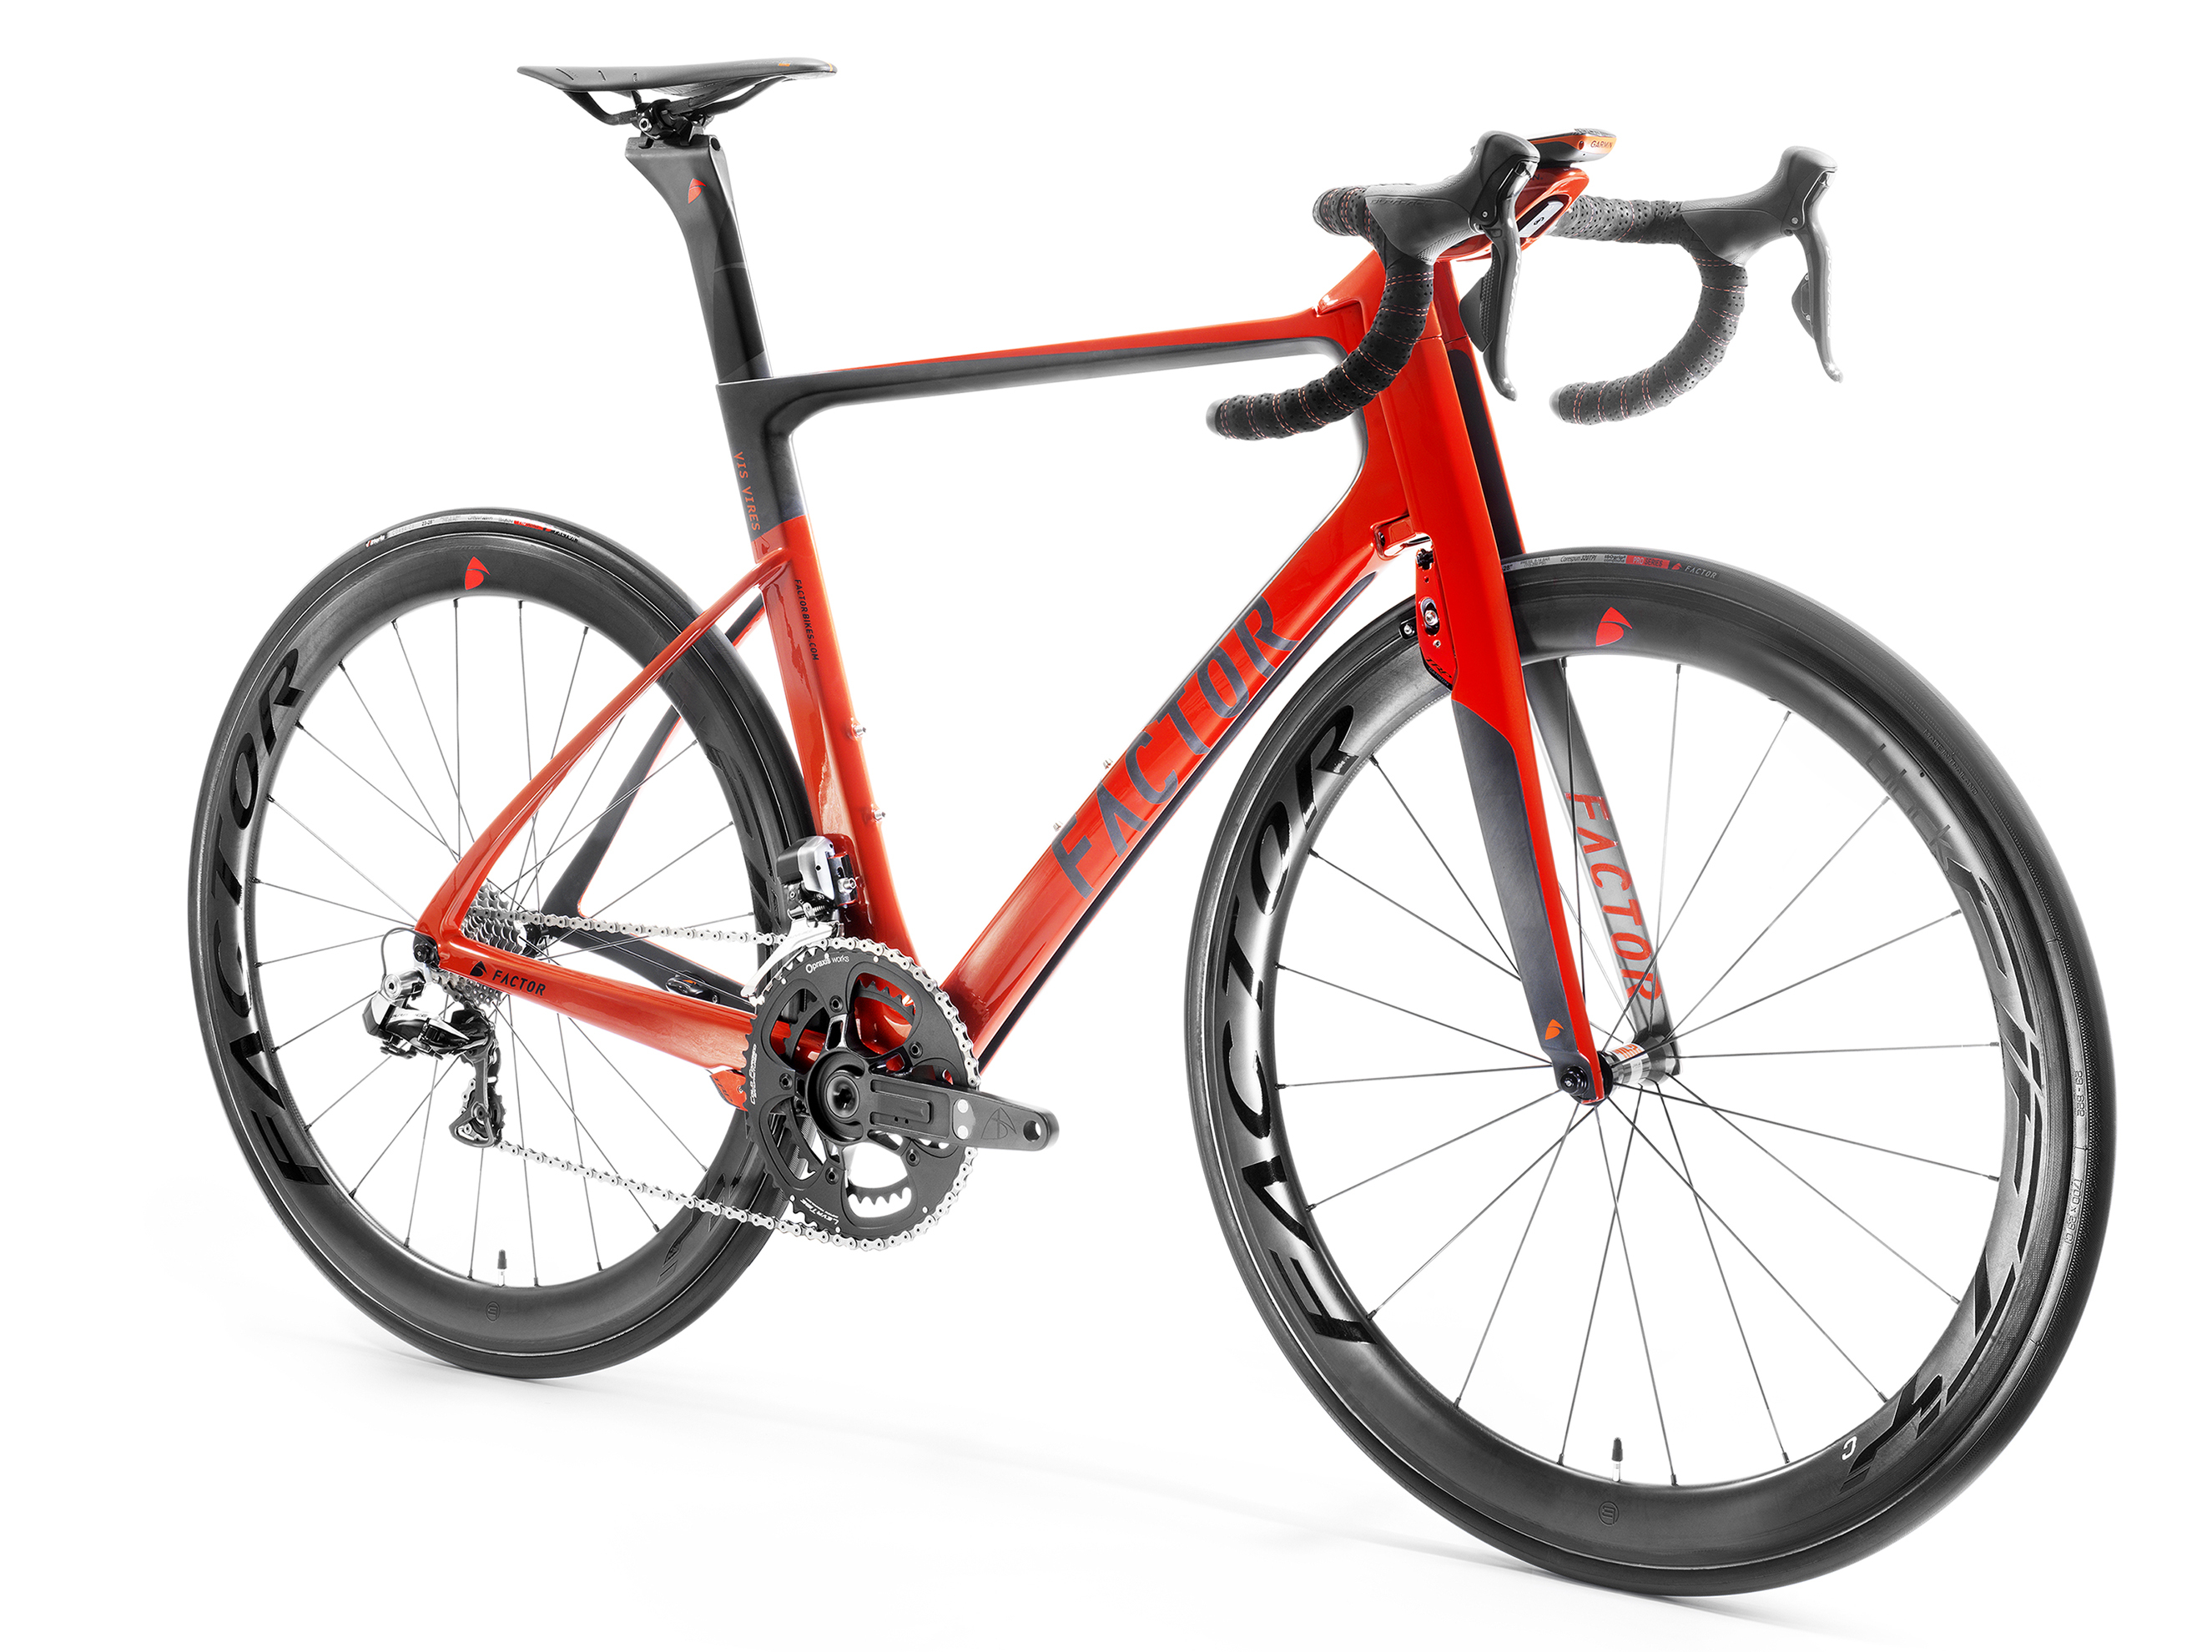 Eurobike announces product awards  0d0514f42